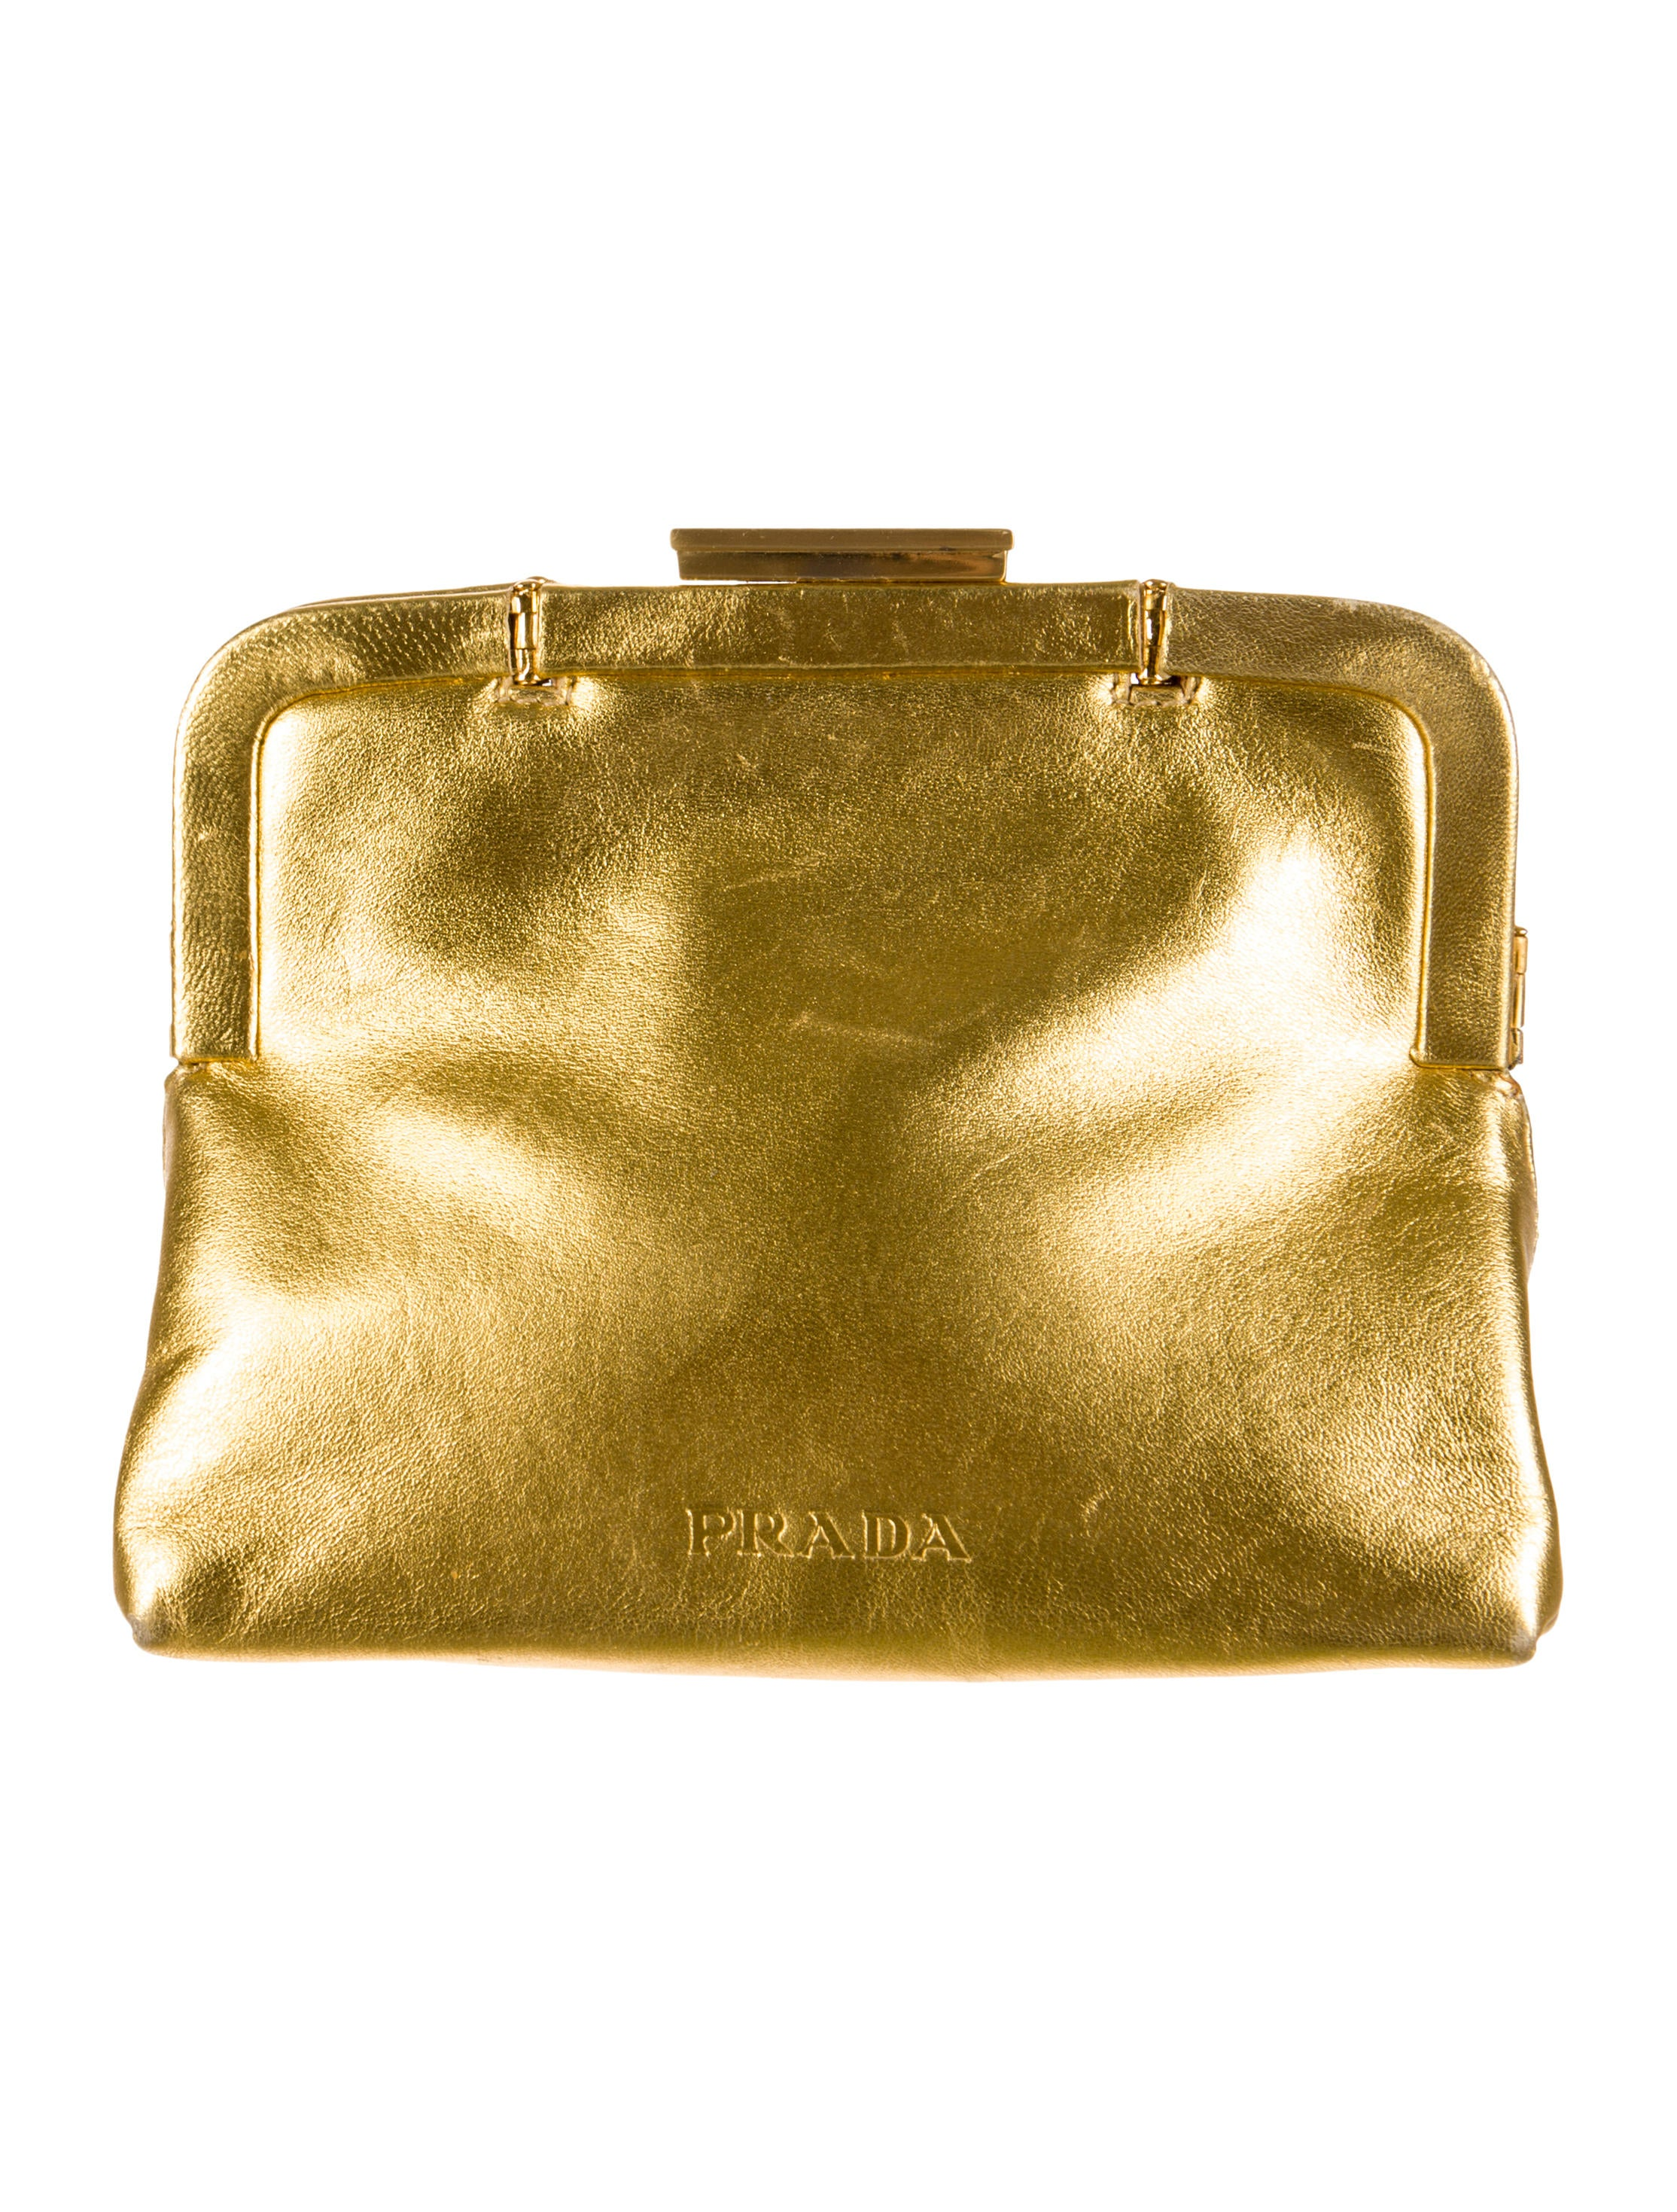 Prada Nappa Metal Clutch - Handbags - PRA70135 | The RealReal